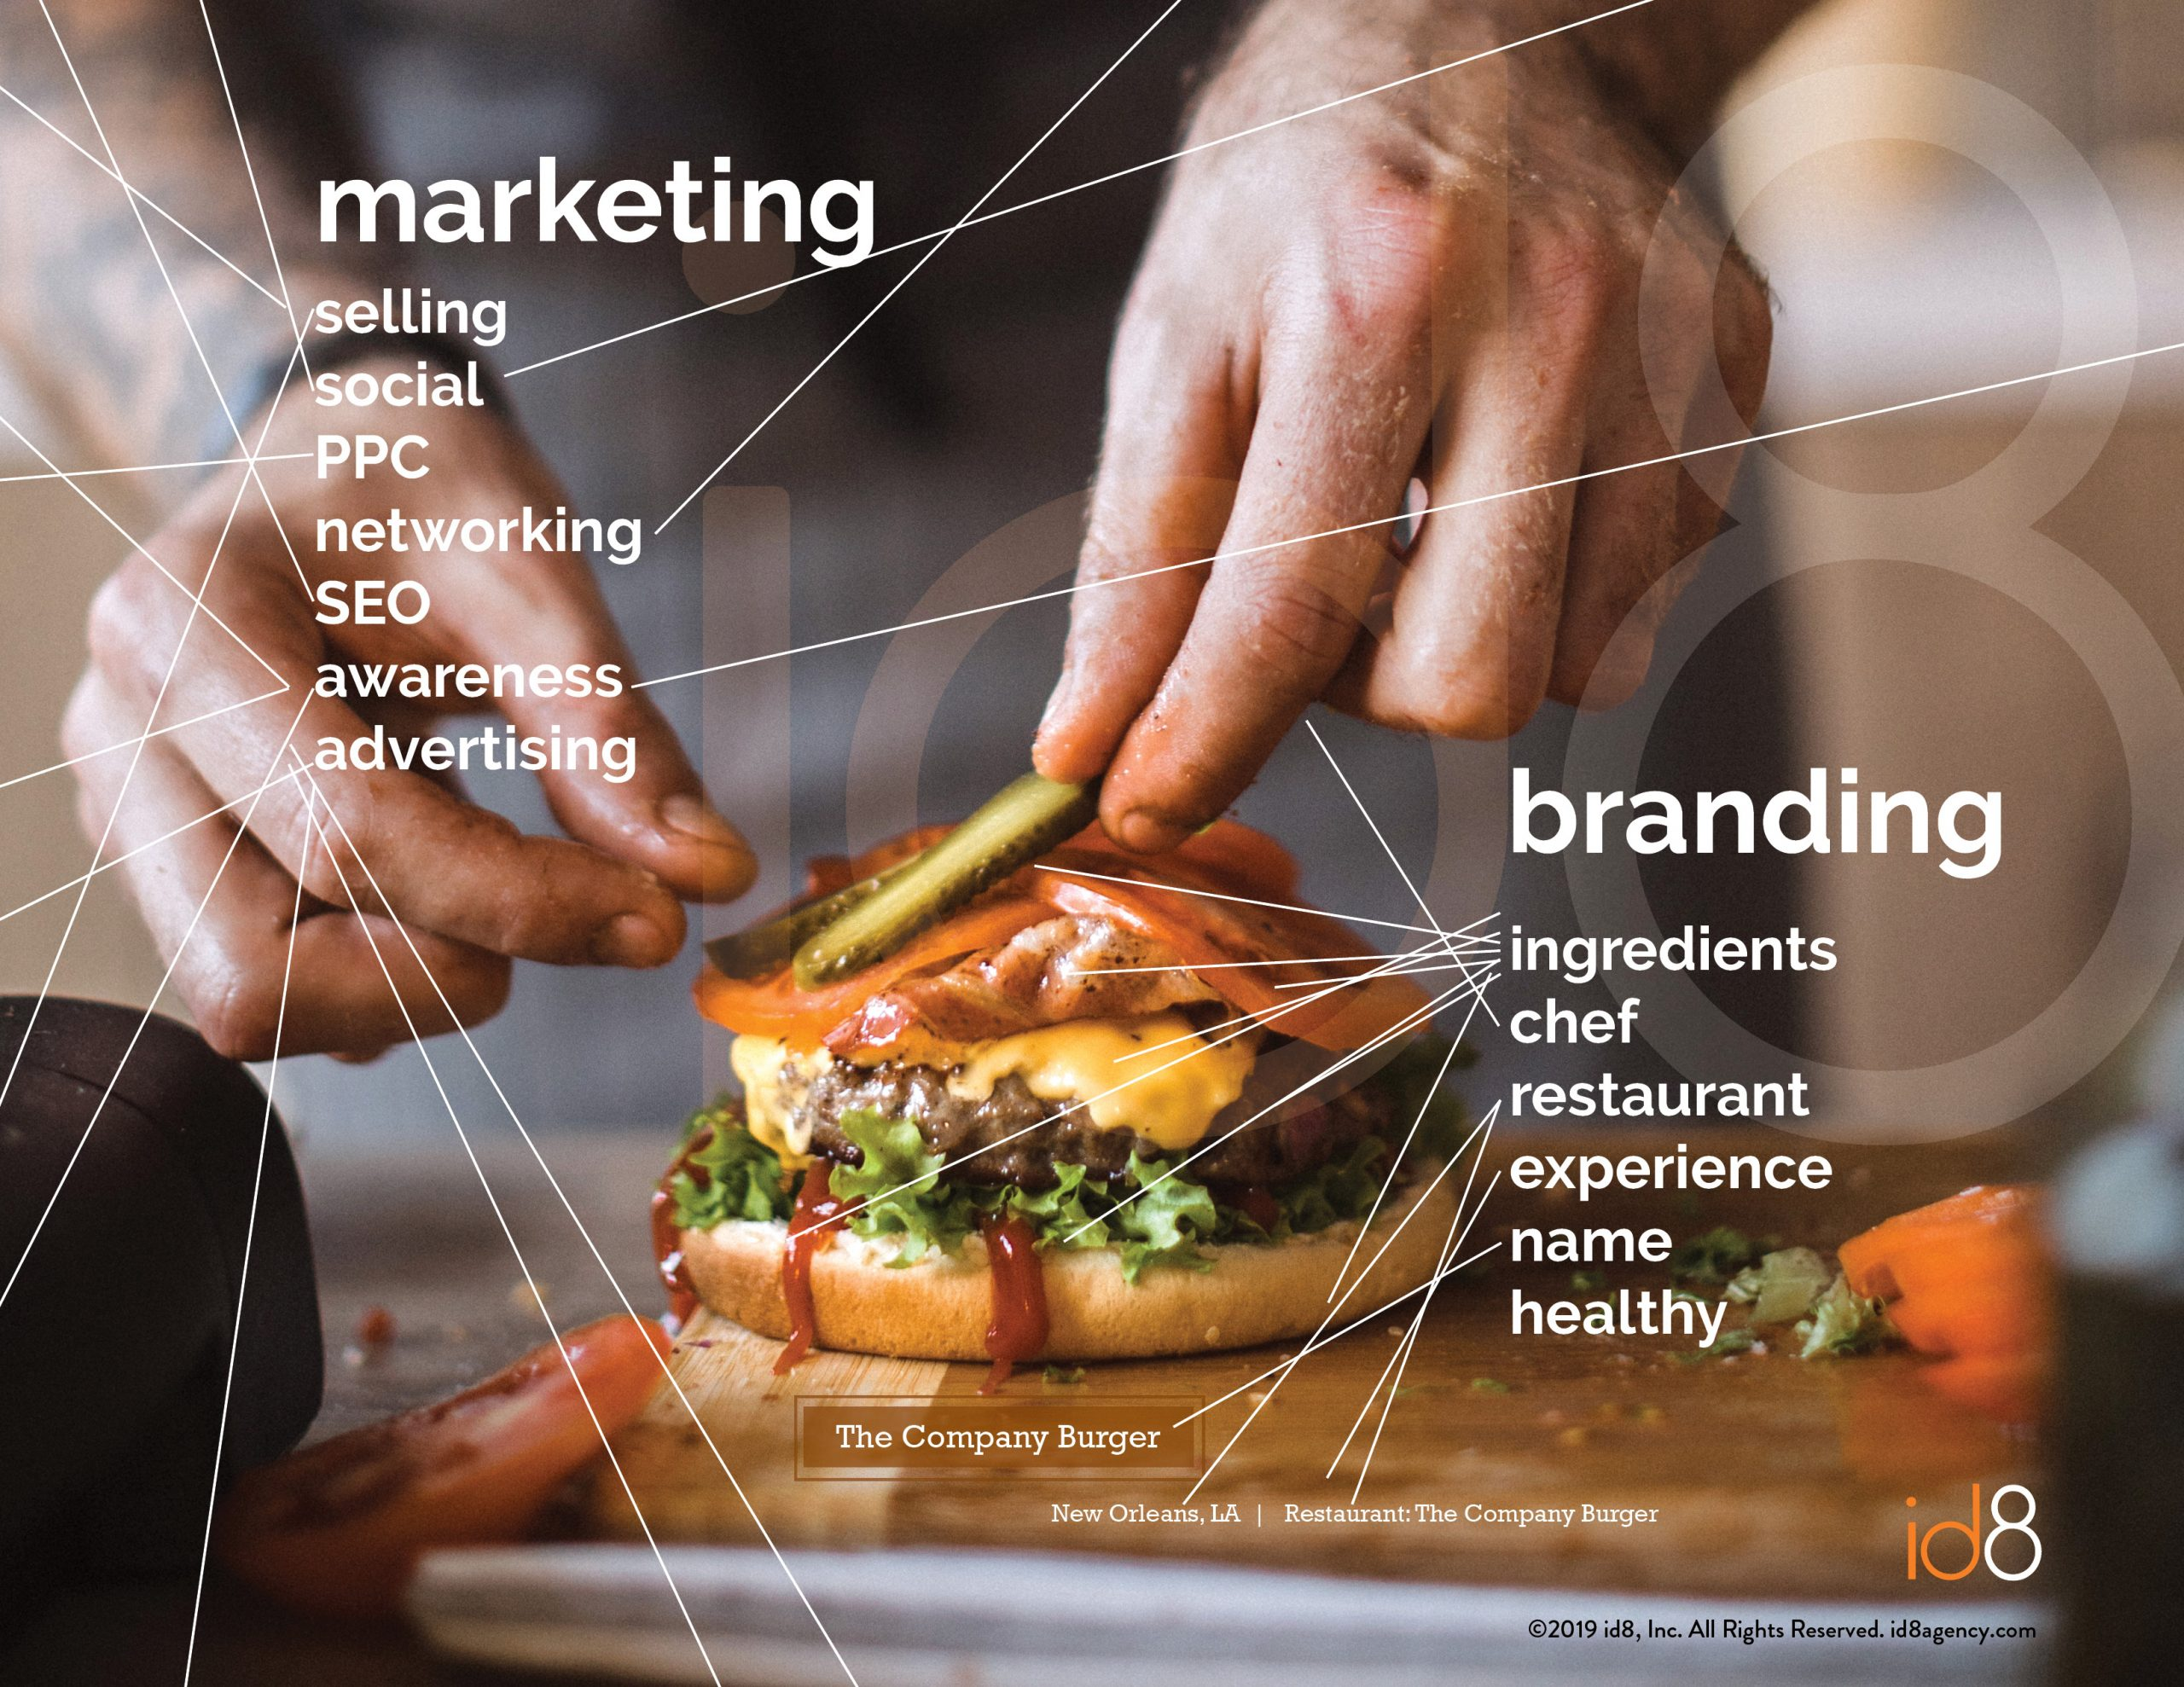 What comes first for manufacturers: branding or marketing?